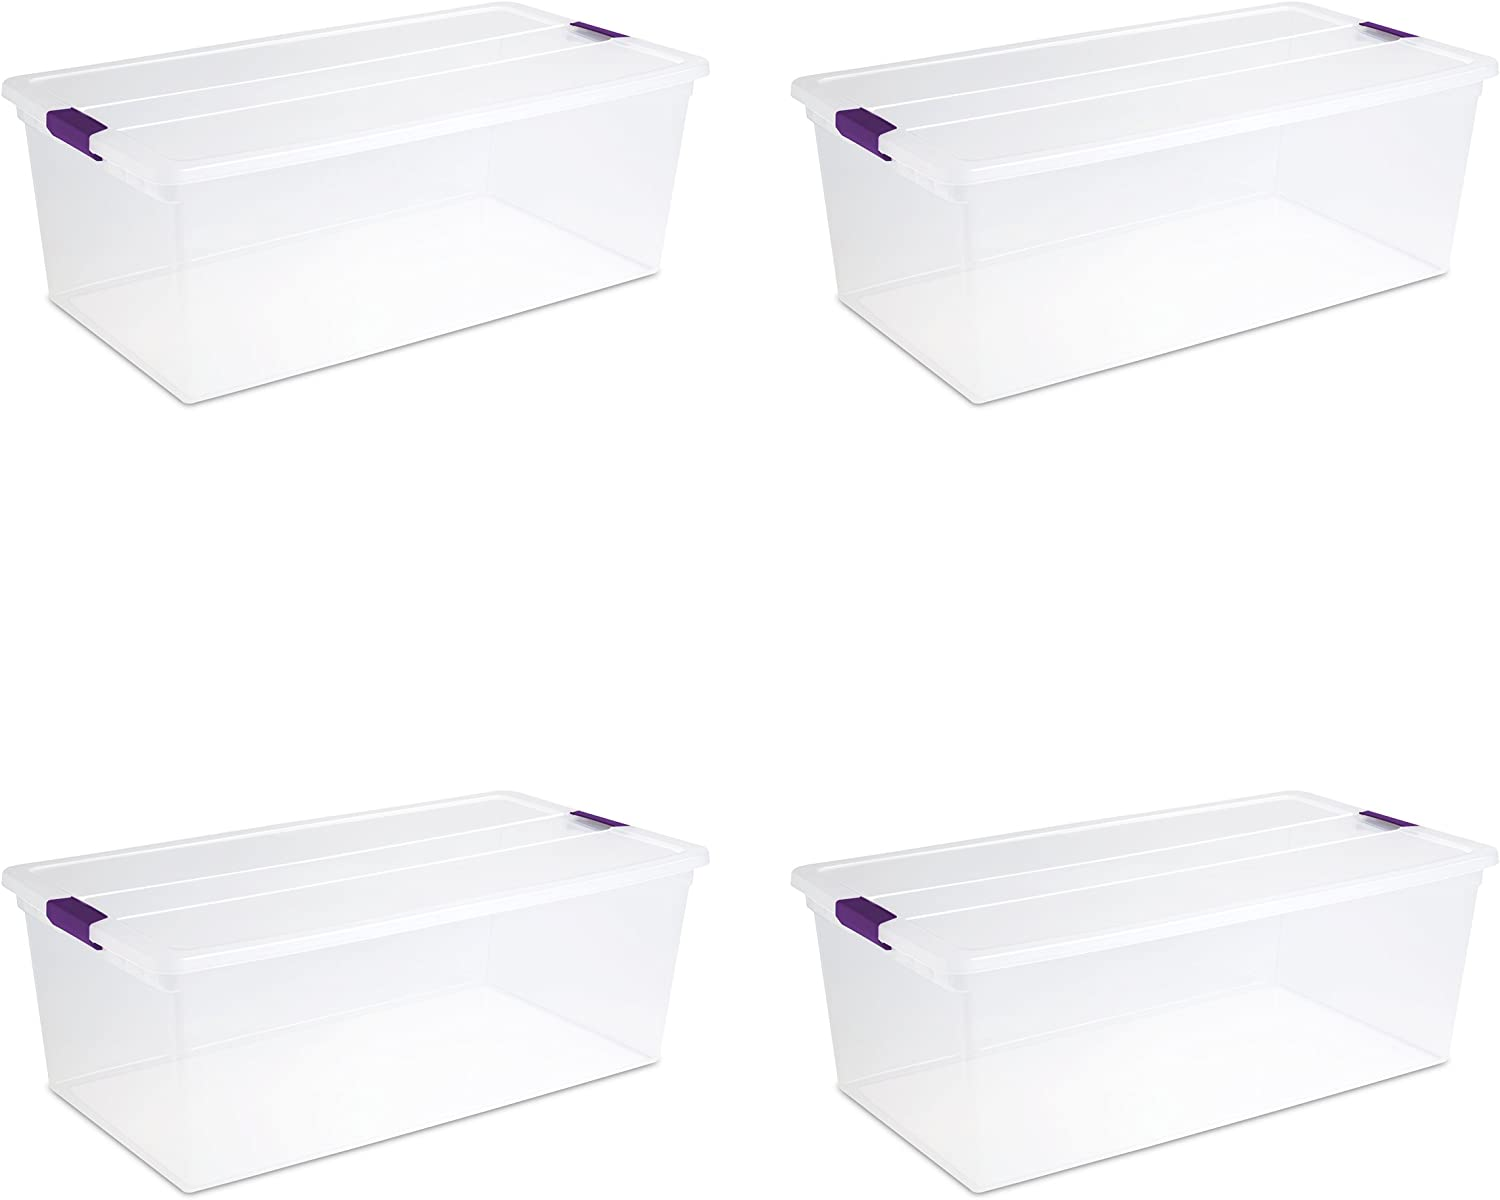 Sterilite 17641704 110 Quart/104 Liter ClearView Latch Box, Clear with Sweet Plum Latches, 4-Pack